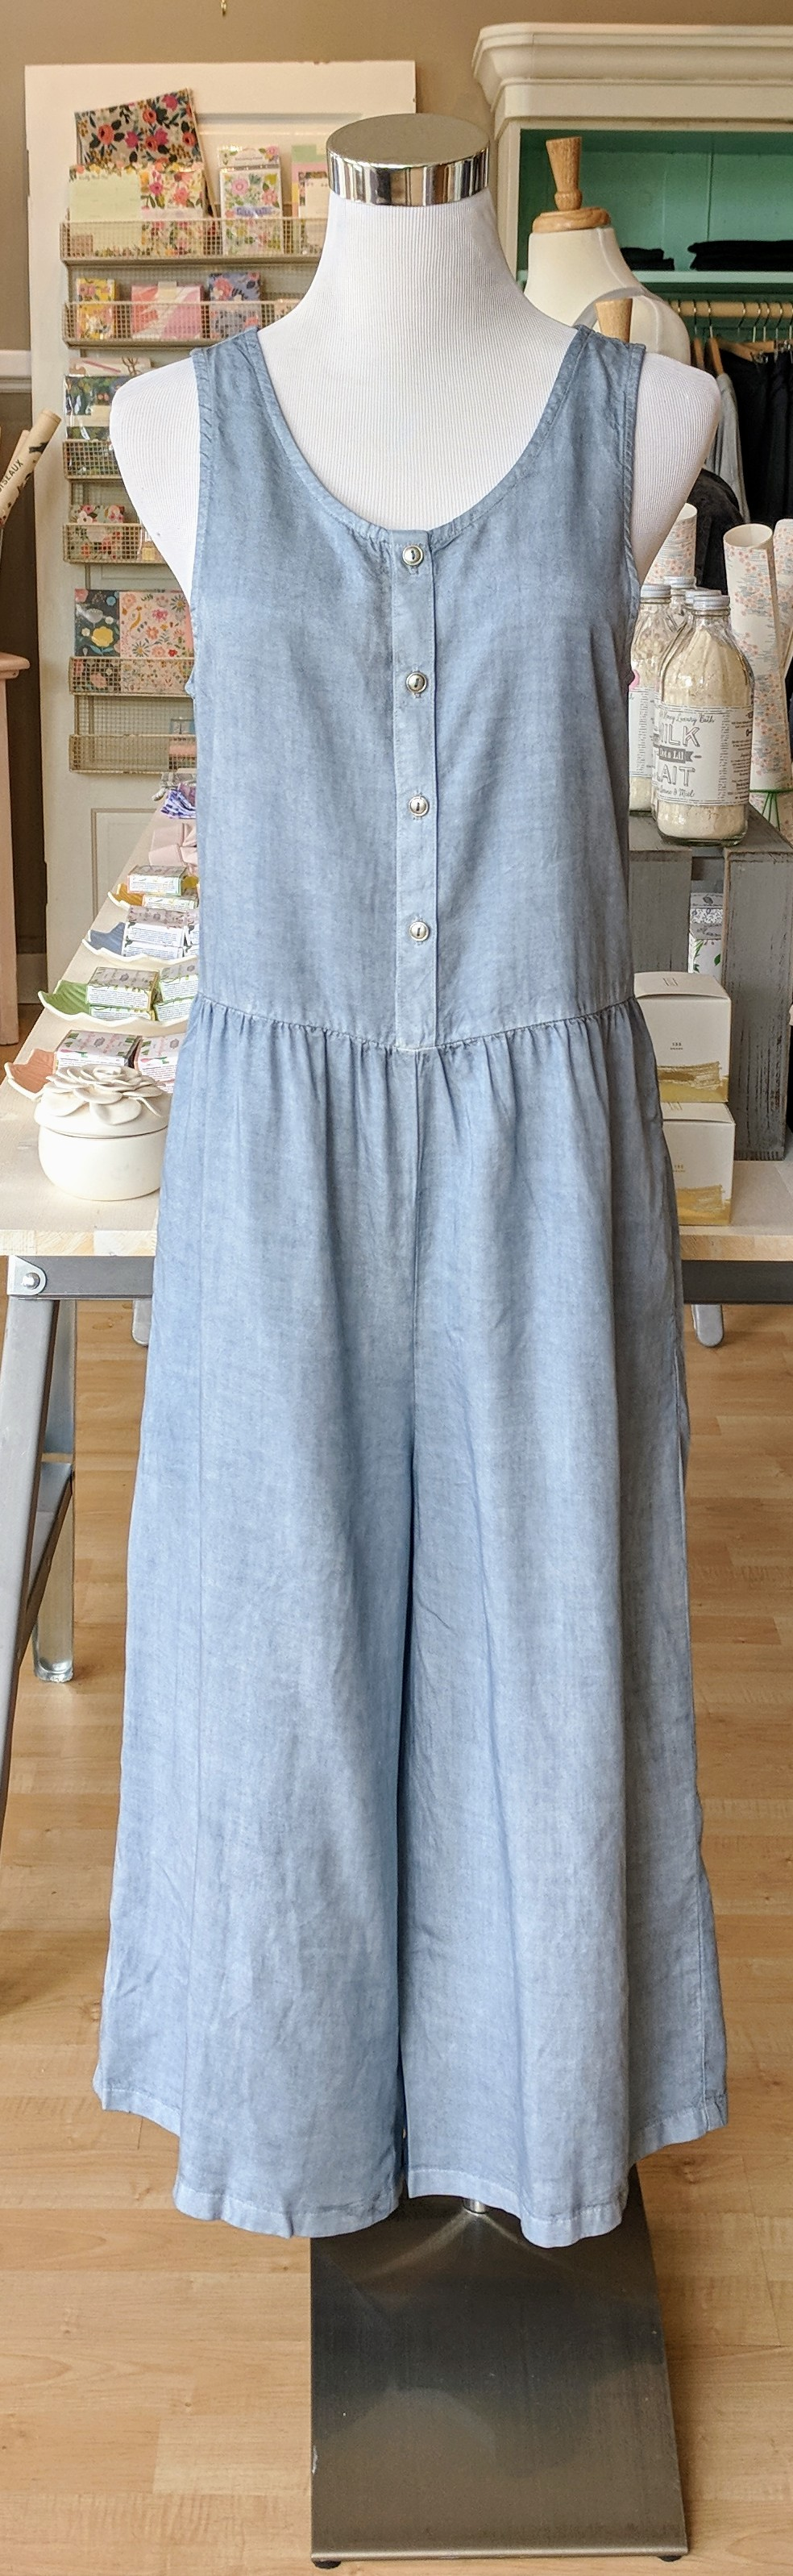 Faded denim jumpsuit with scoop neckline and button detail on front.